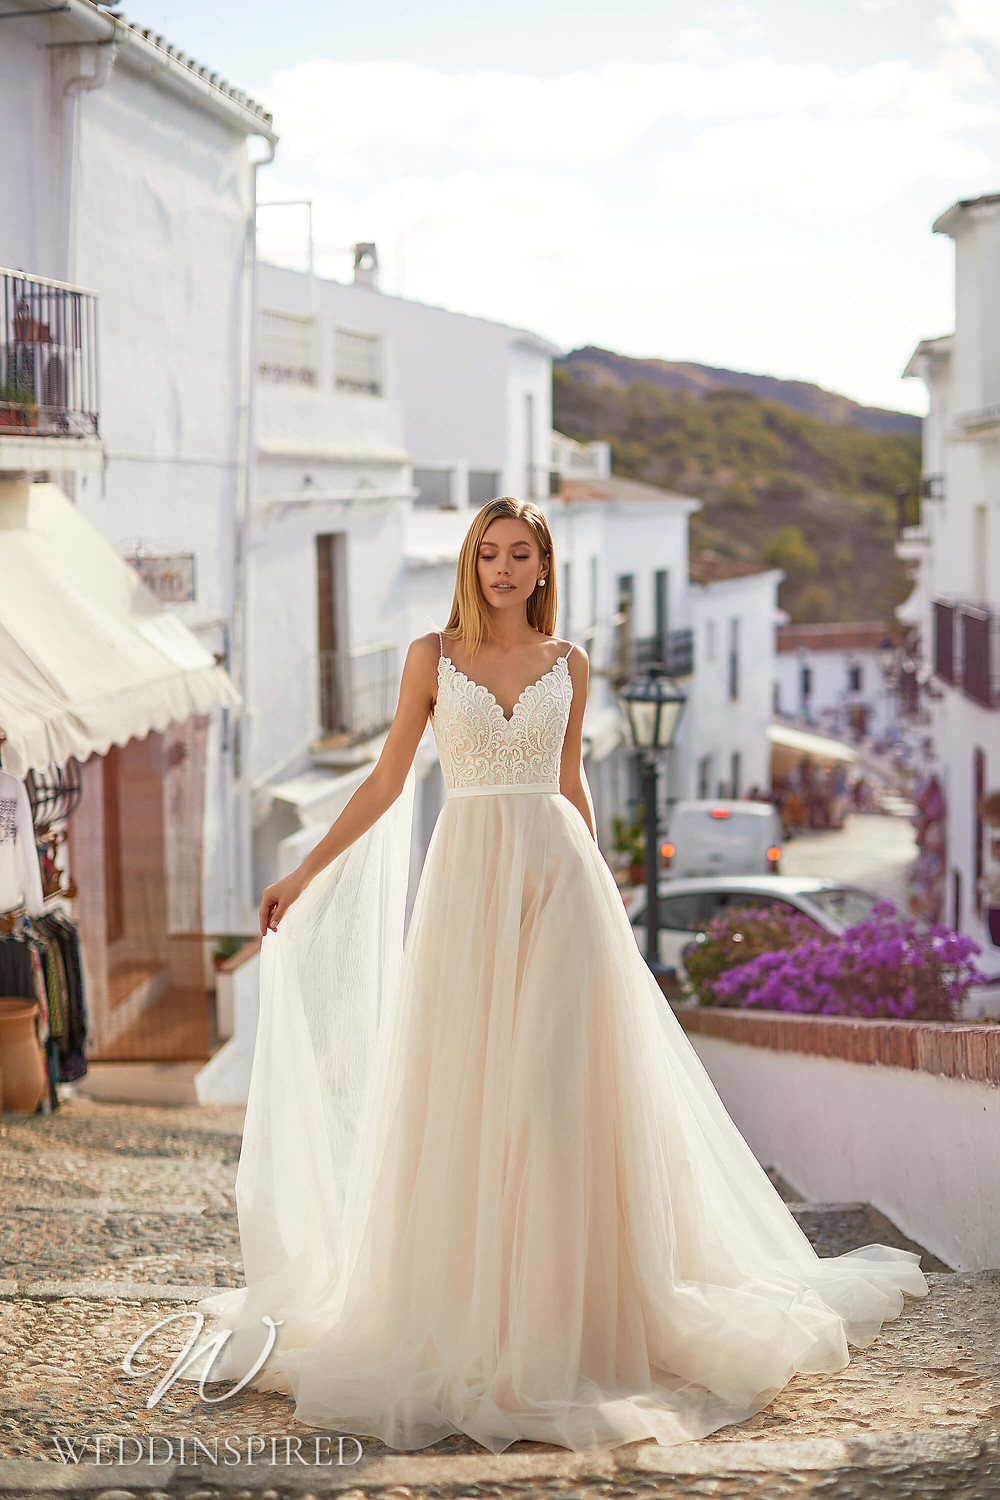 An Essential by Lussano 2021 lace and tulle A-line wedding dress